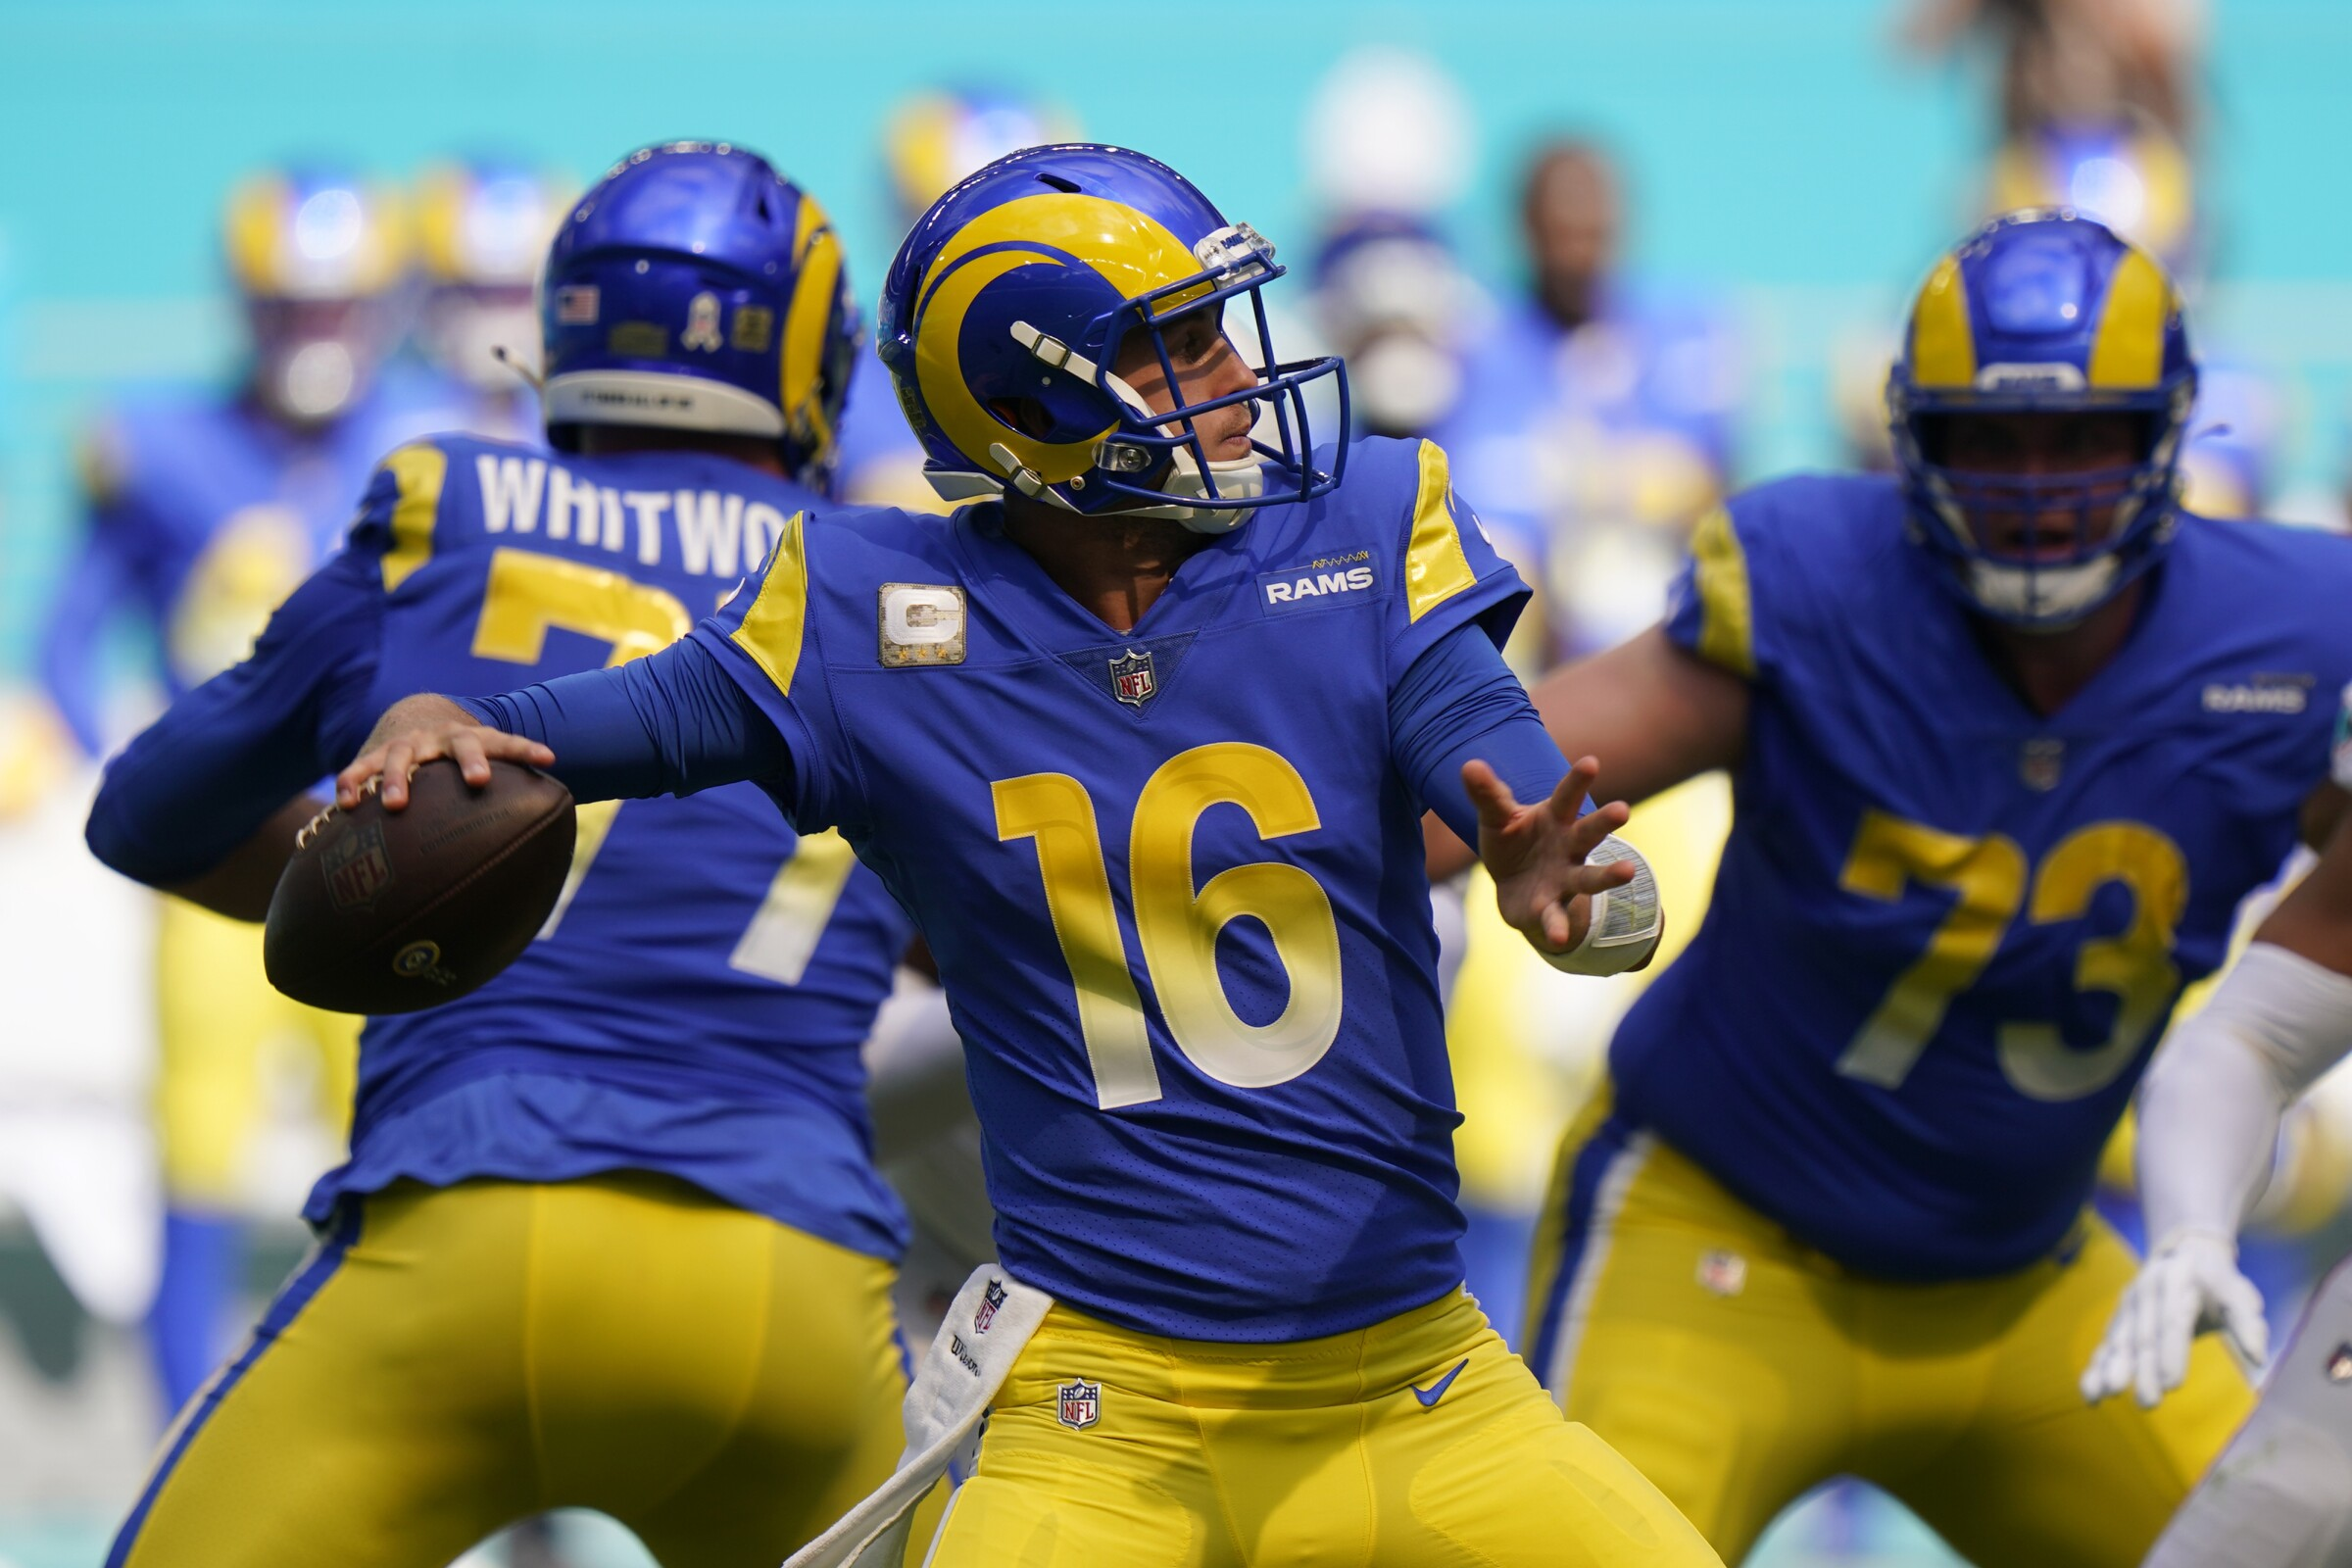 Rams quarterback Jared Goff looks to pass during the first half against the Miami Dolphins.